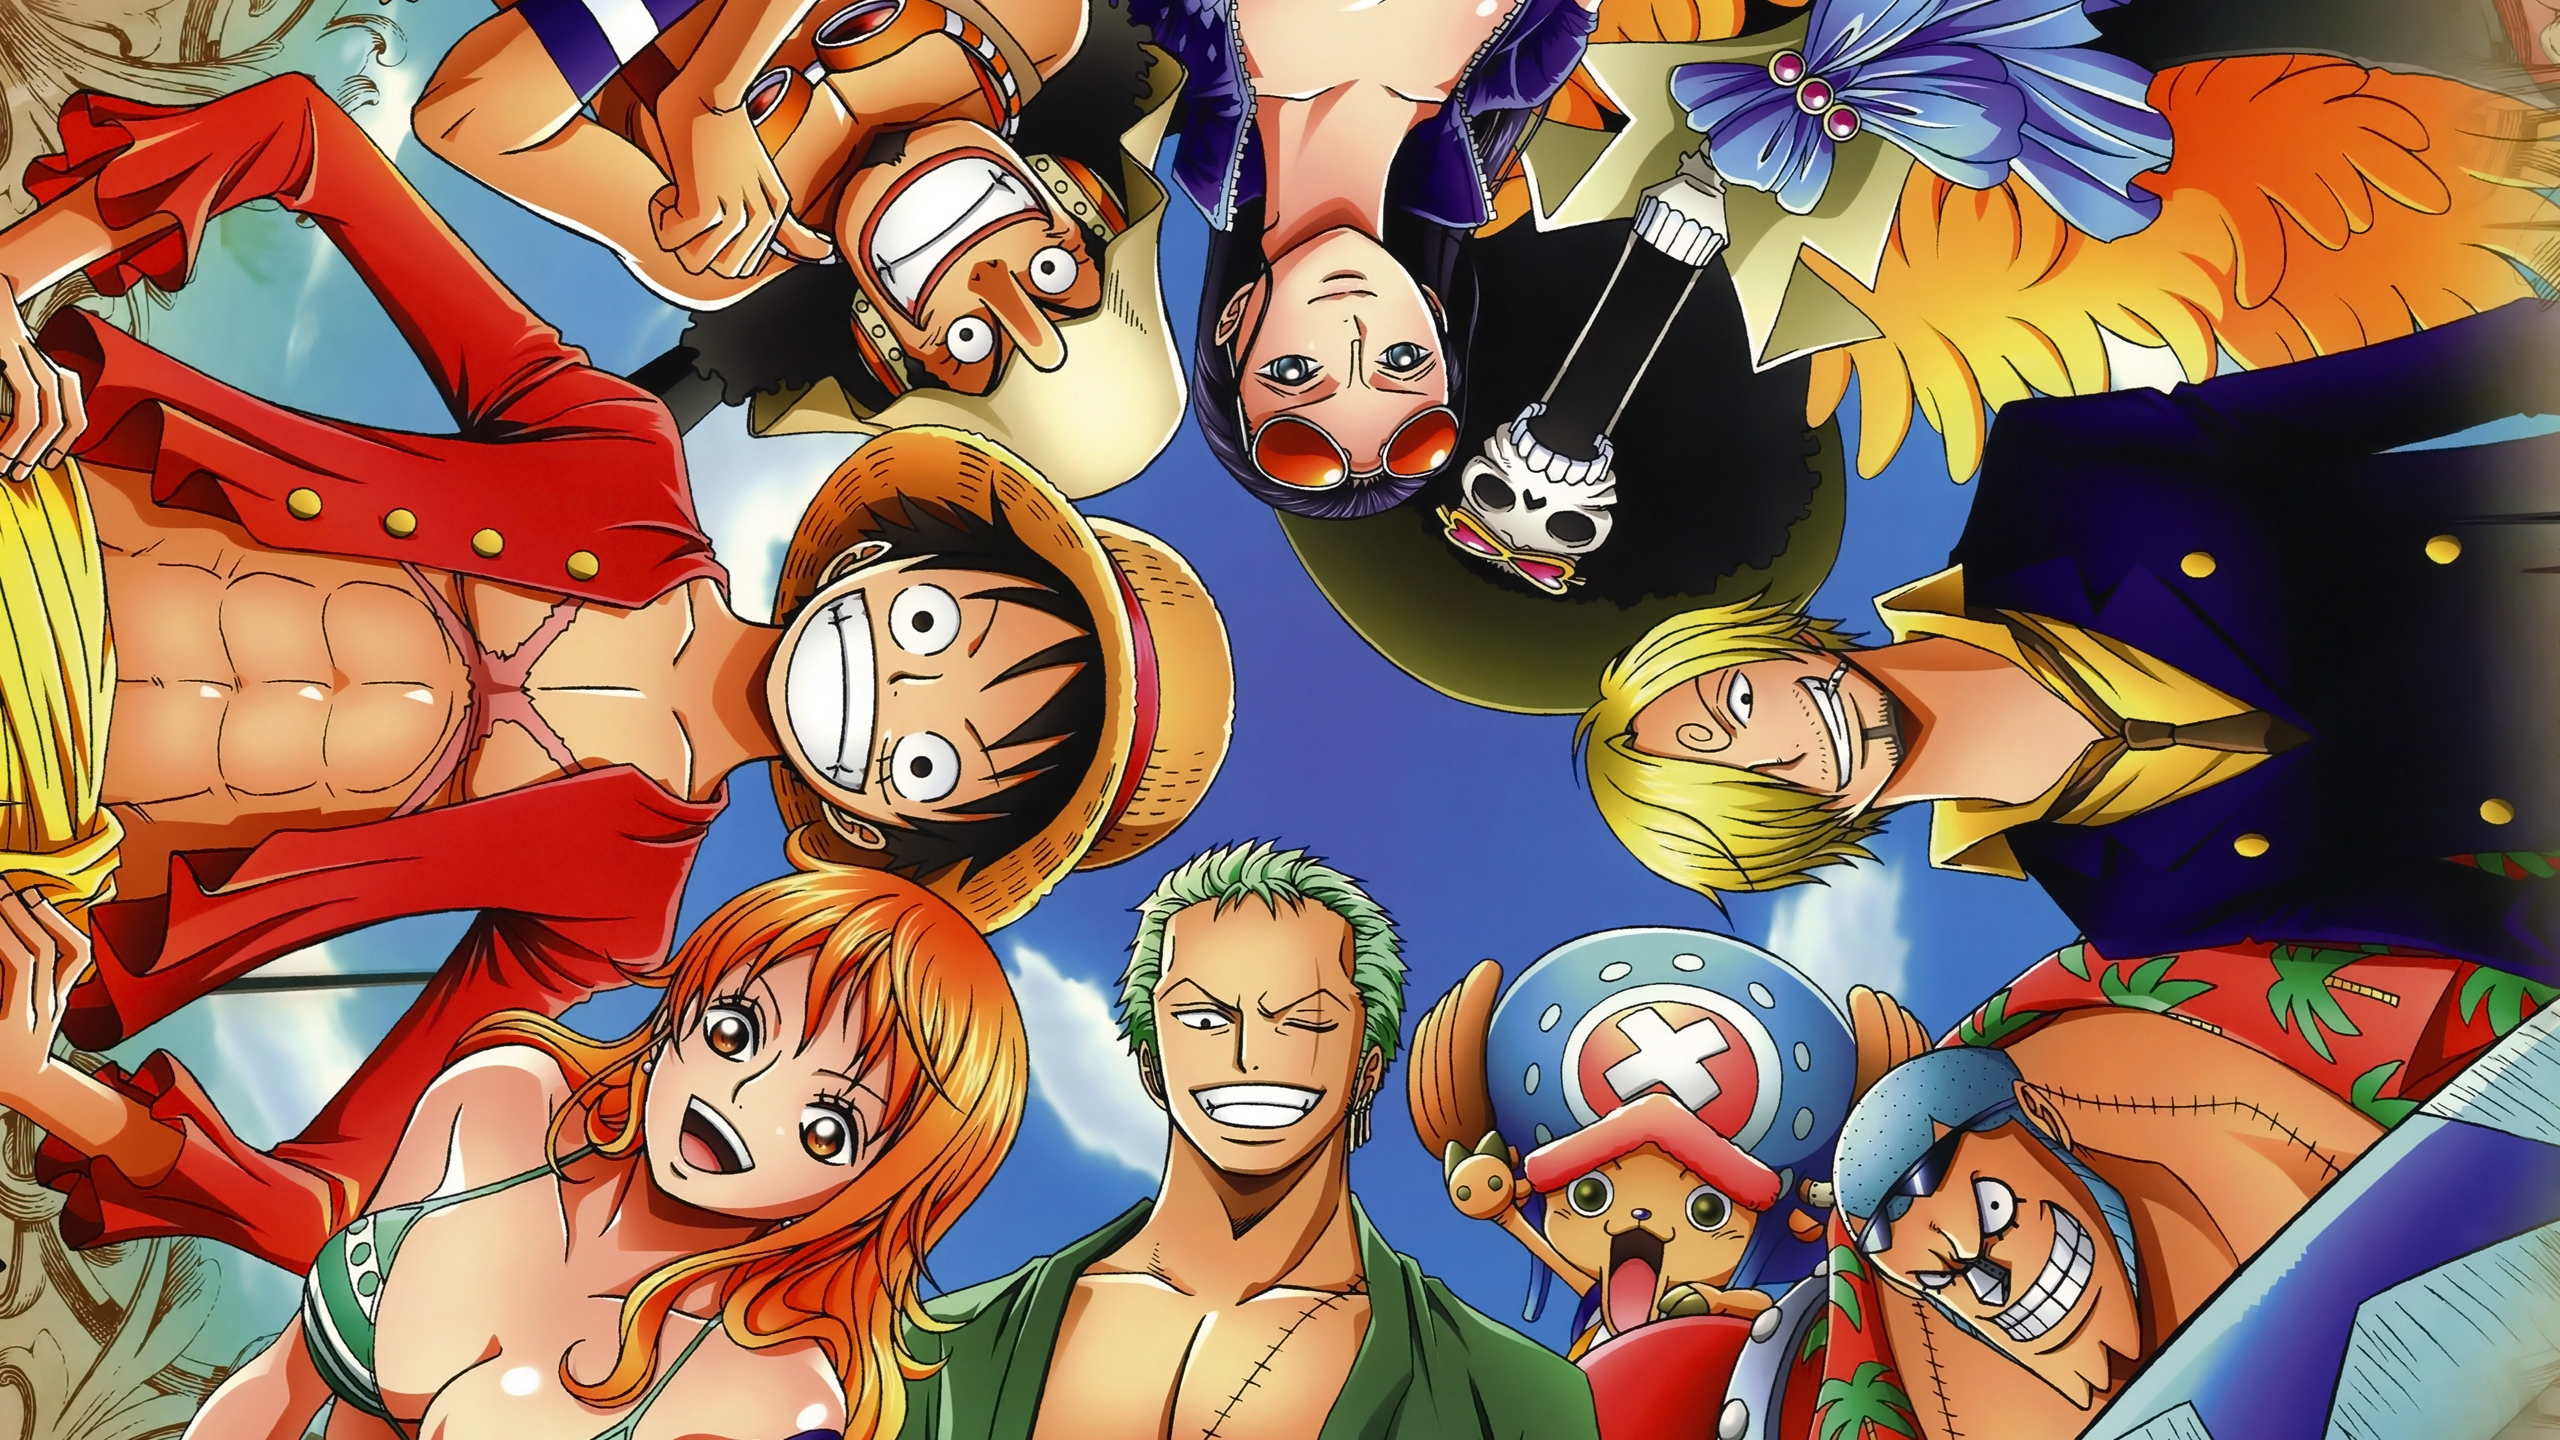 241 Nami One Piece HD Wallpapers Background Images   Wallpaper 2560x1440